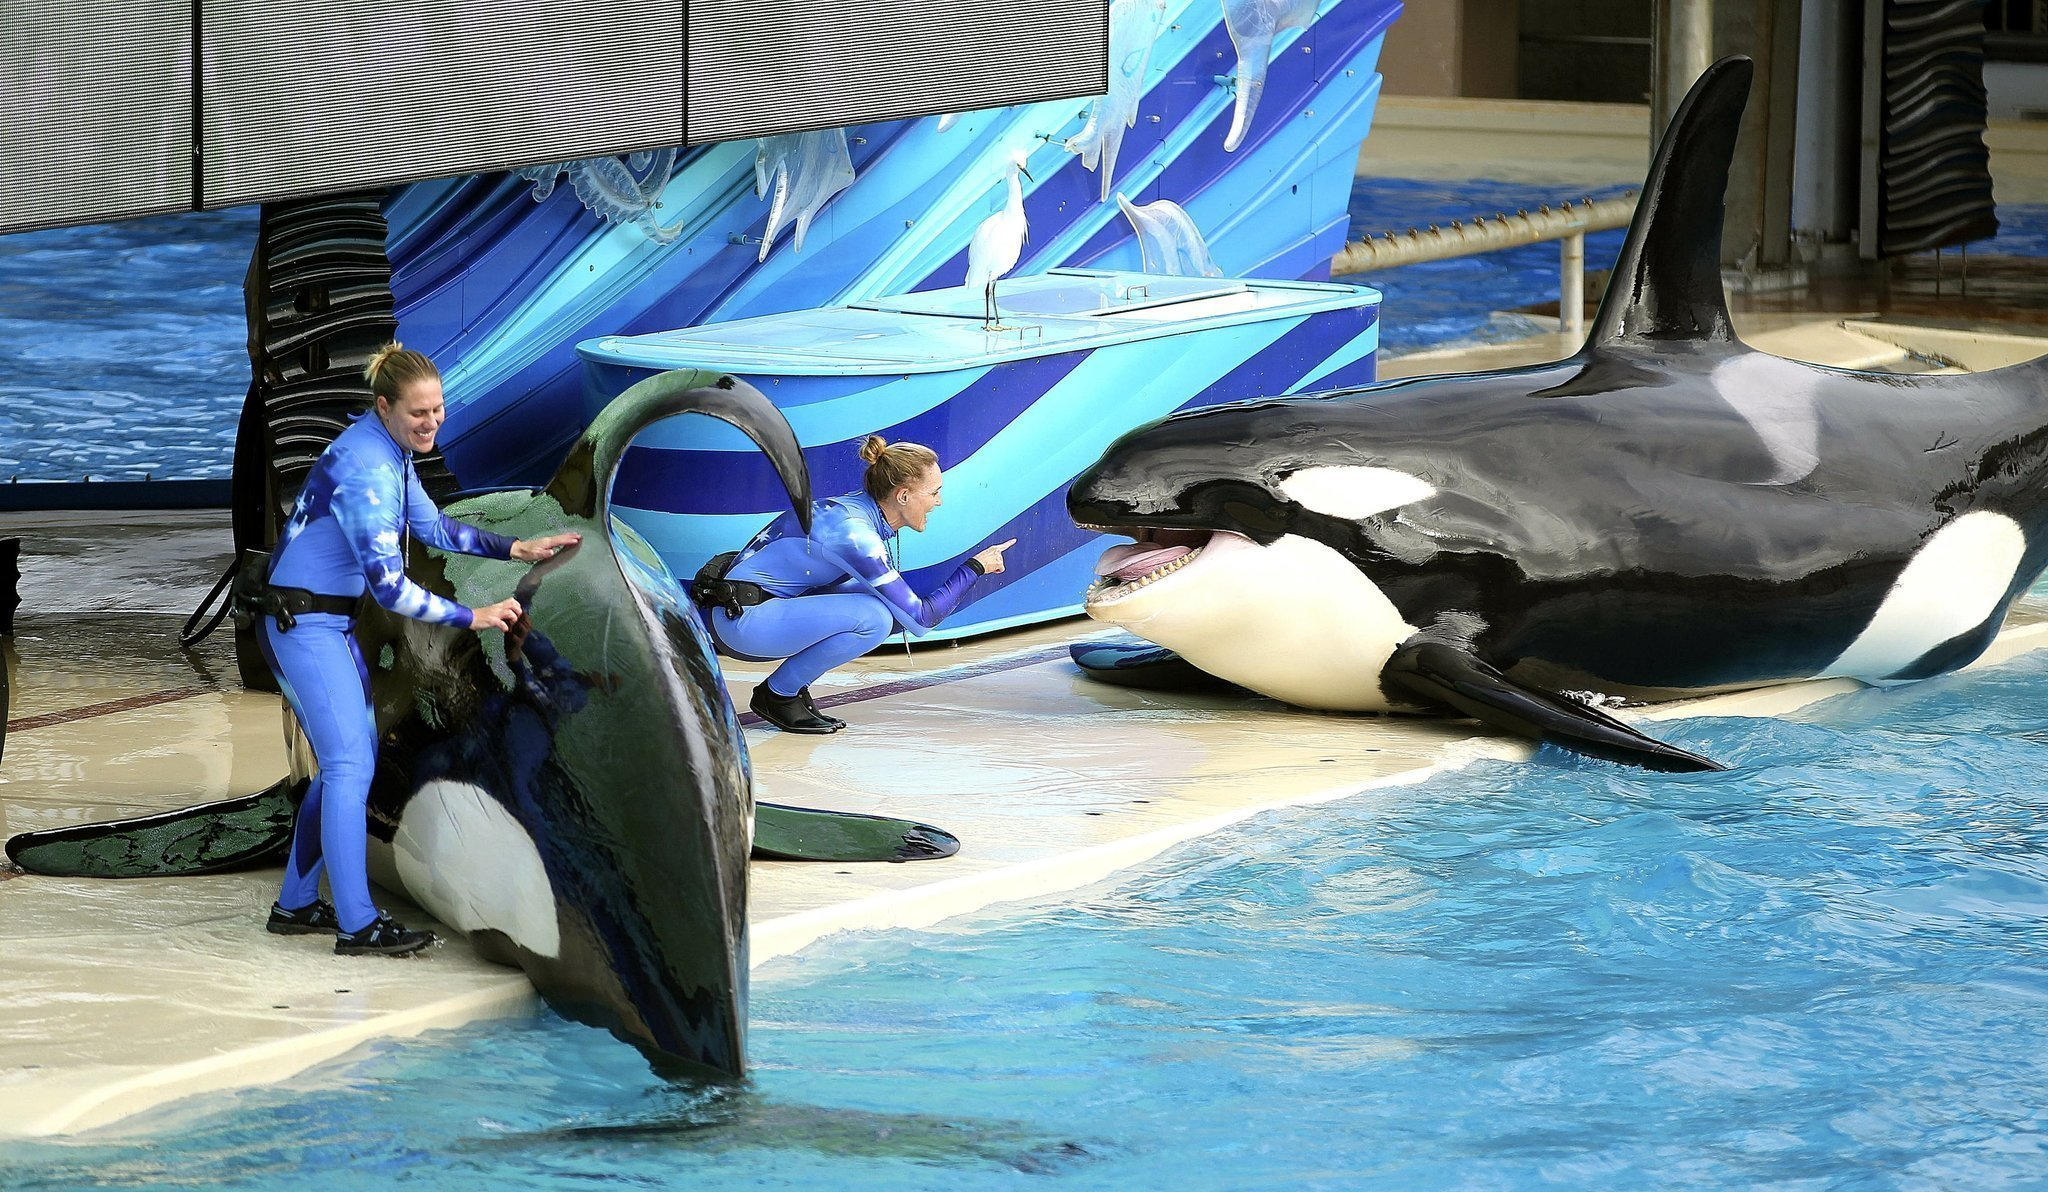 seaworld intends to replace shamu show with a new orca experience in